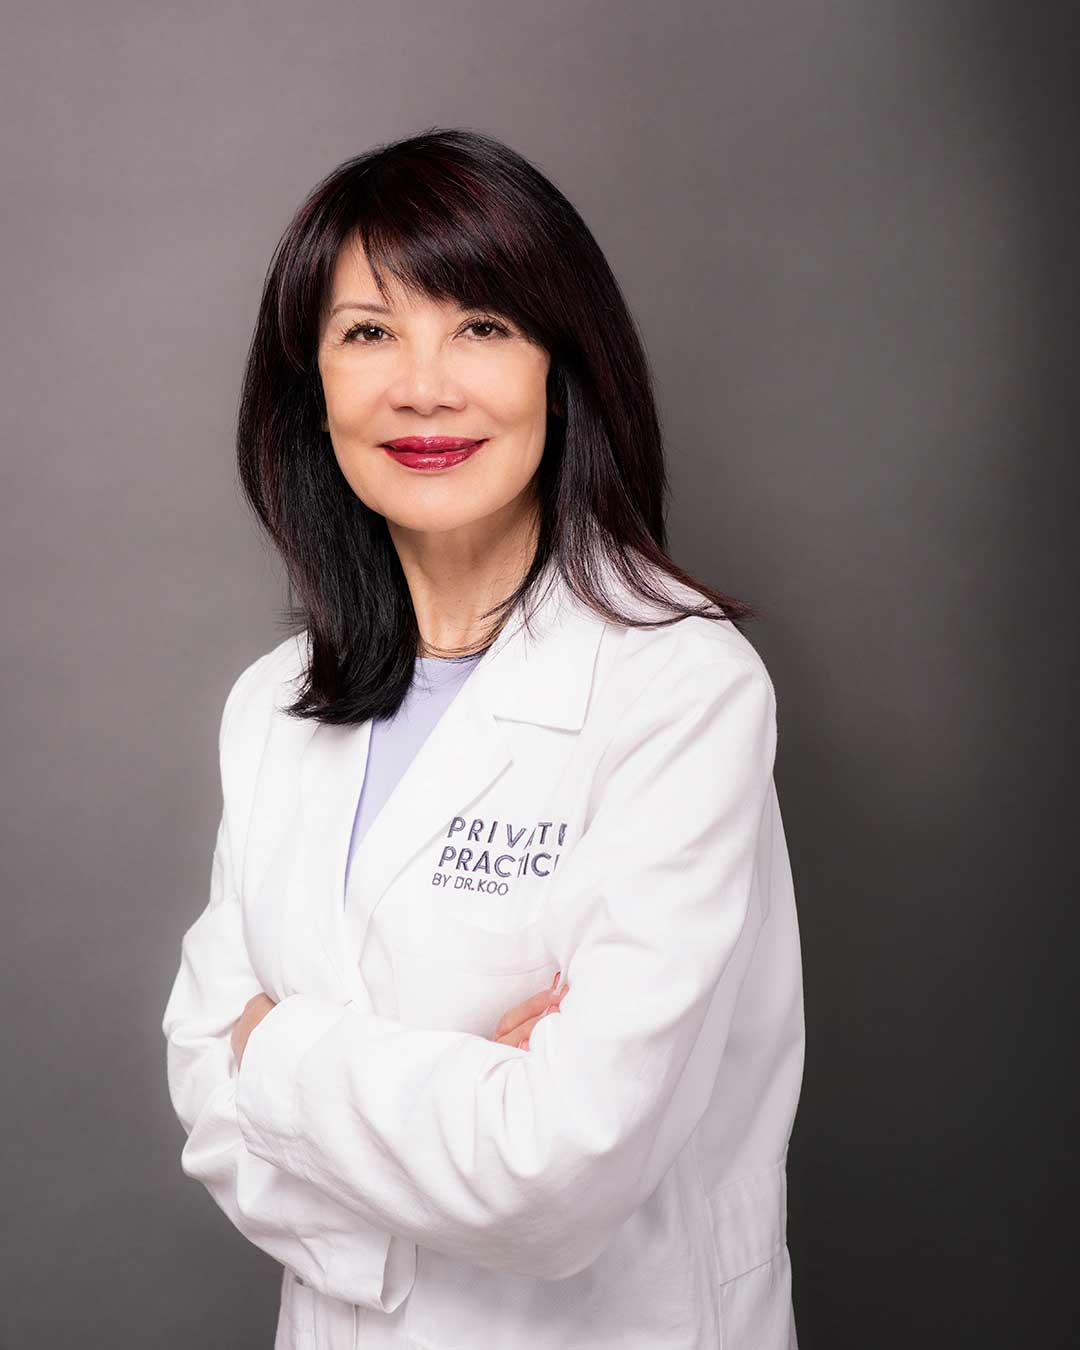 portrait of Dr. Michele Koo Private Practice by Dr Koo